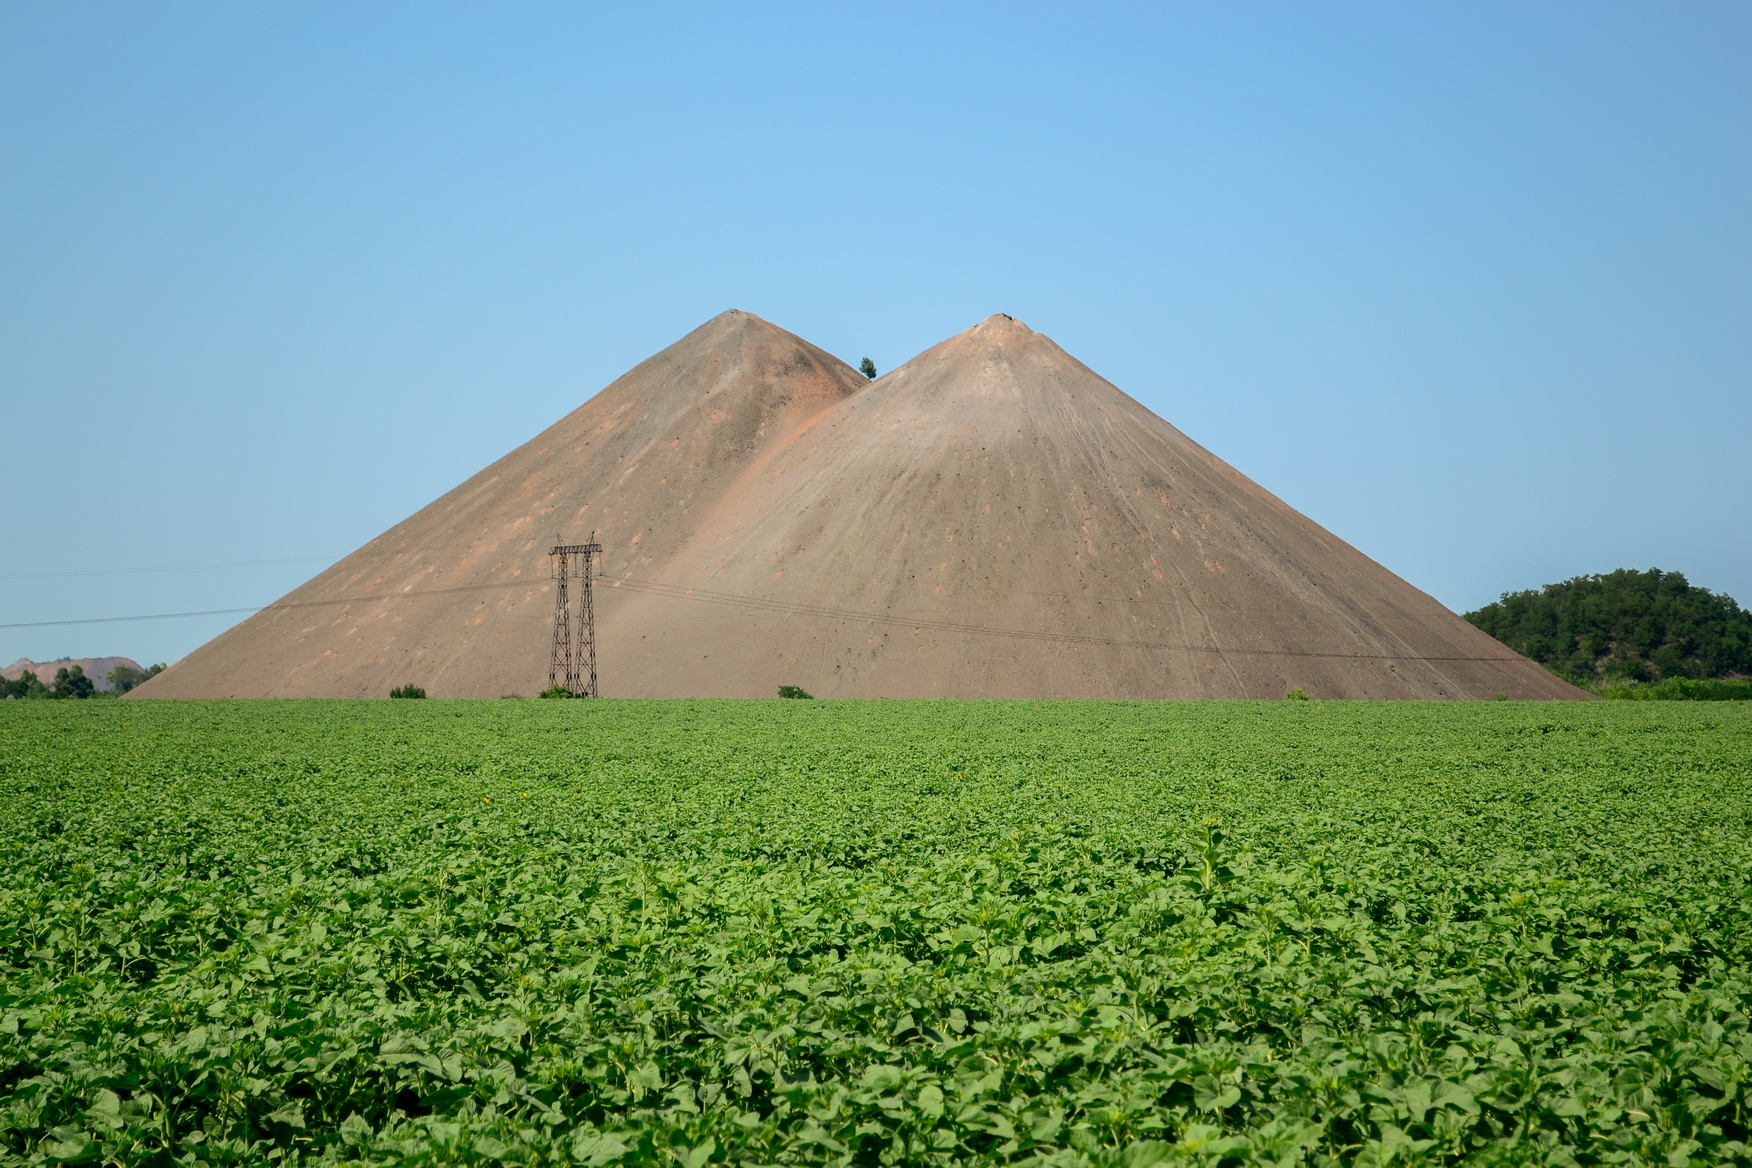 Pyramids of Donbas. Dmitry of Torubalko